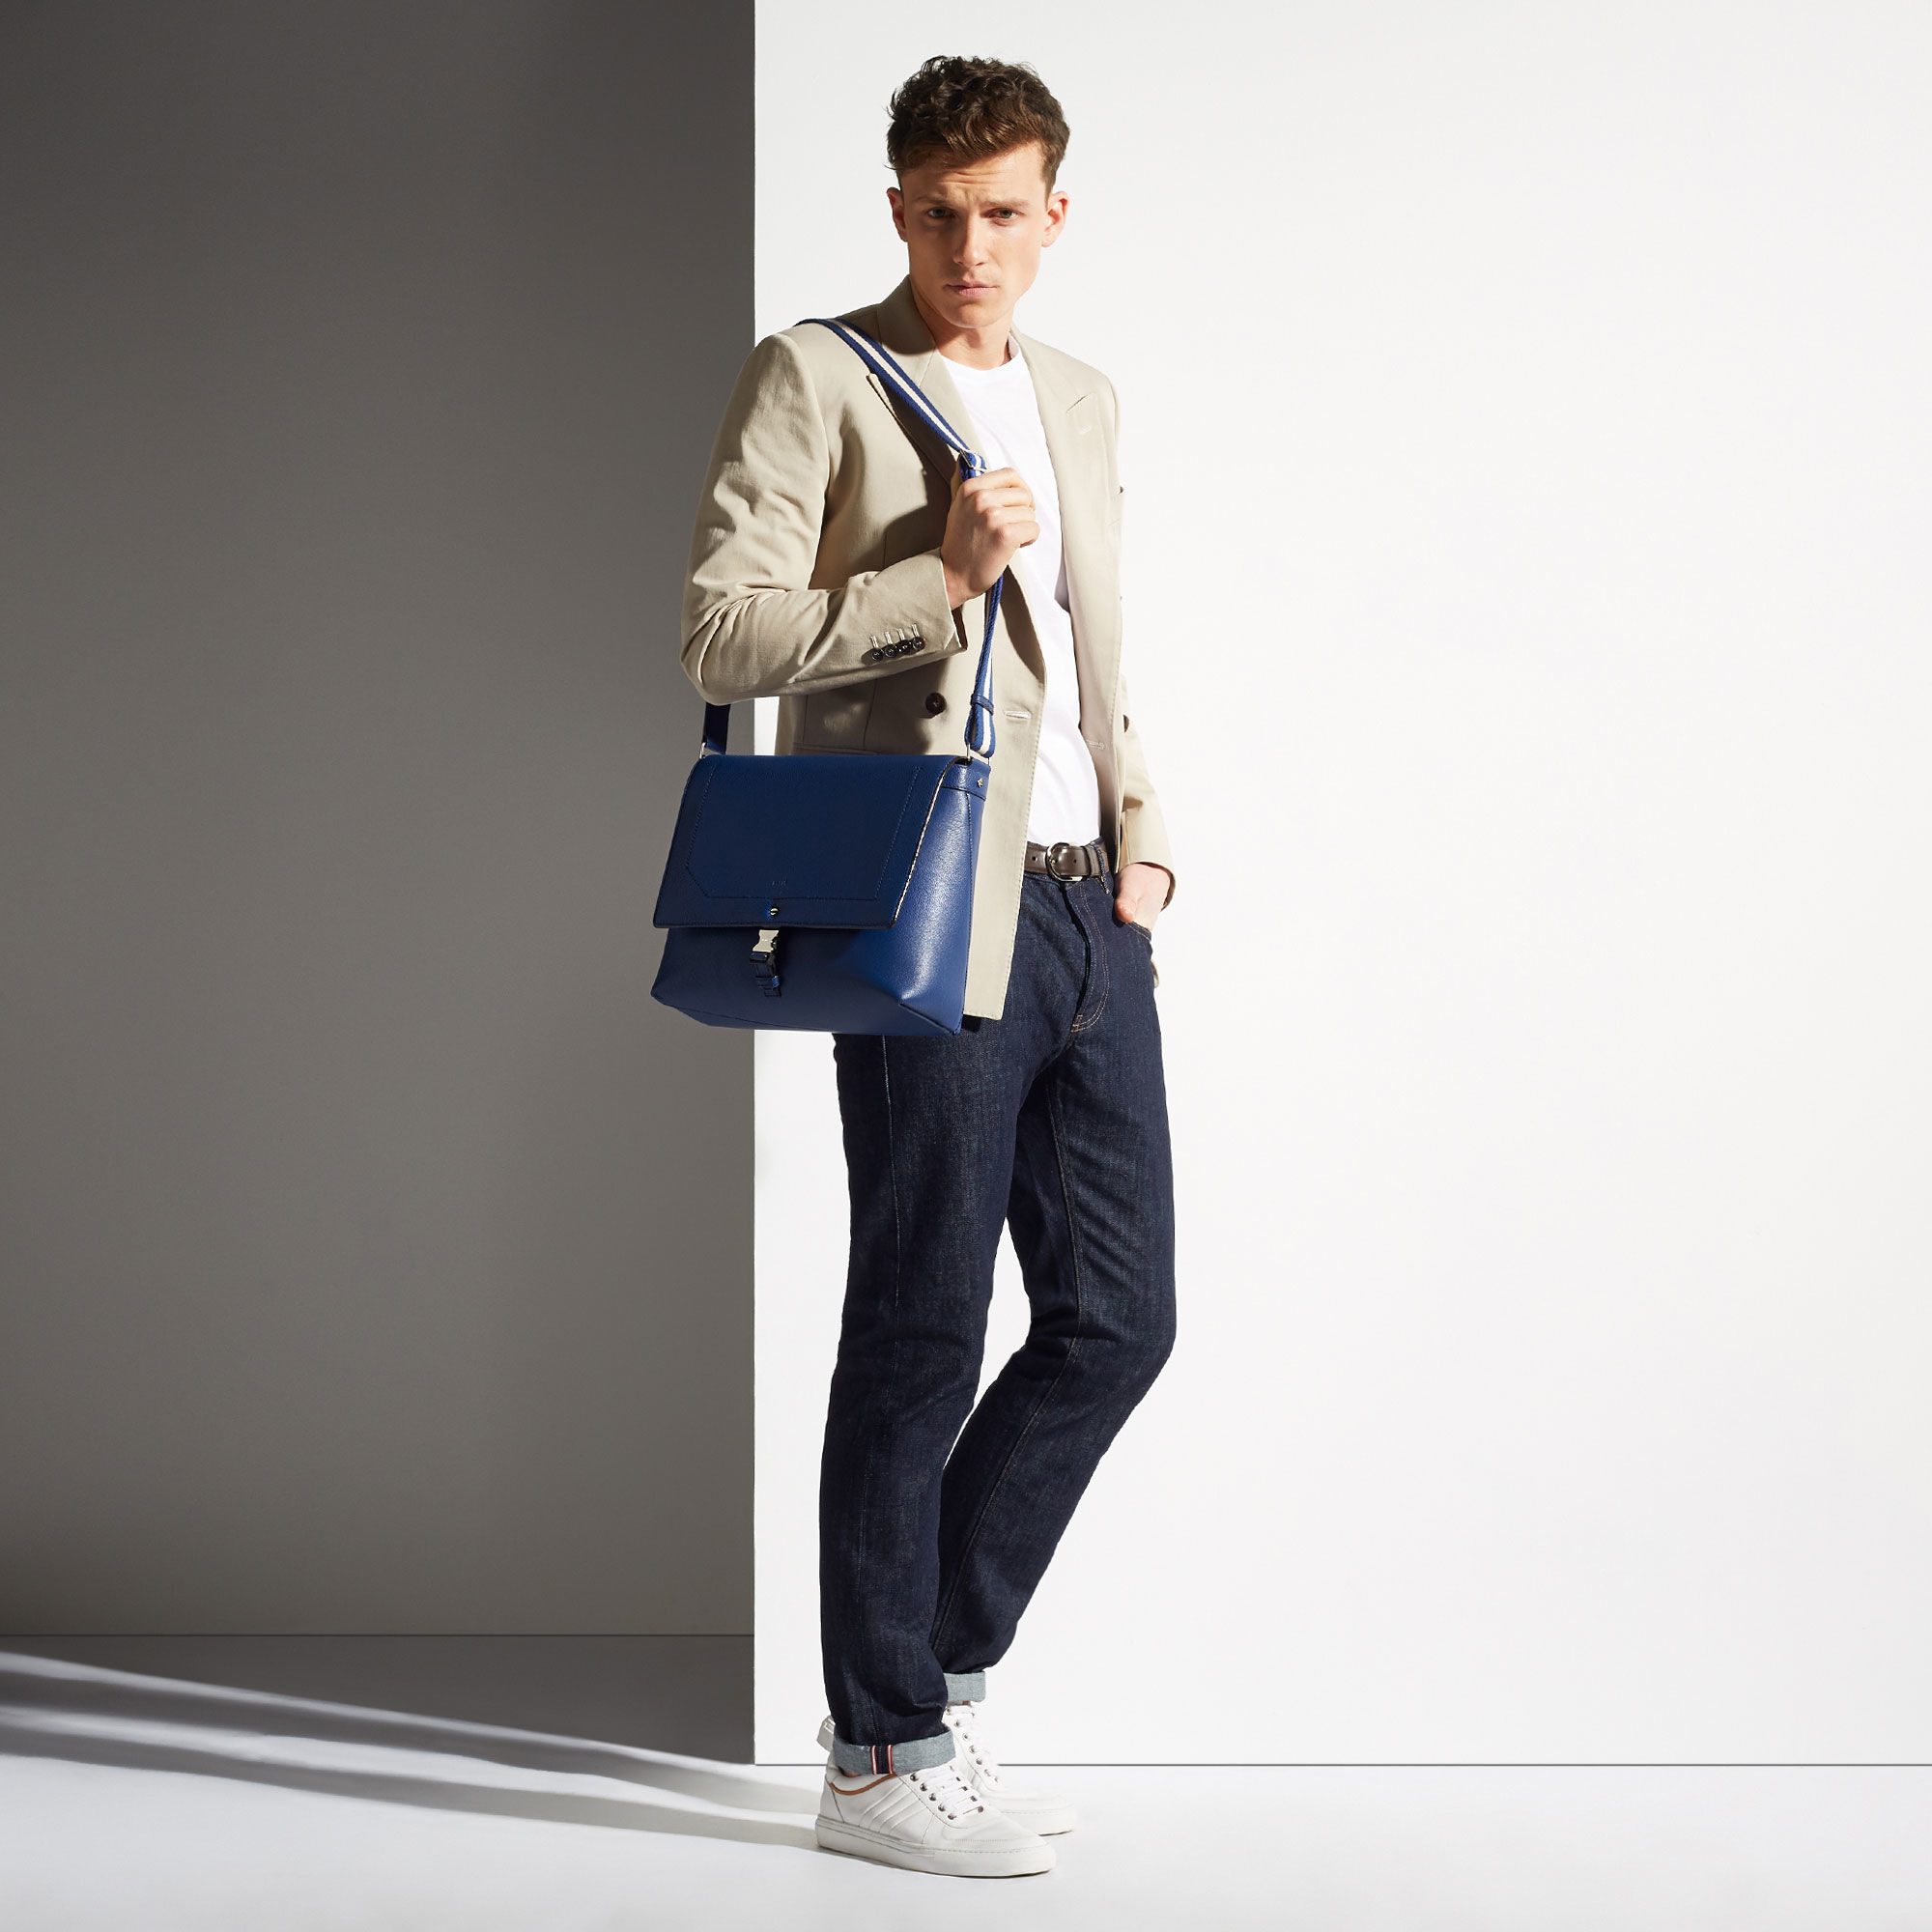 Lyst - Bally Kenny Small in Blue for Men 180db4c92d257